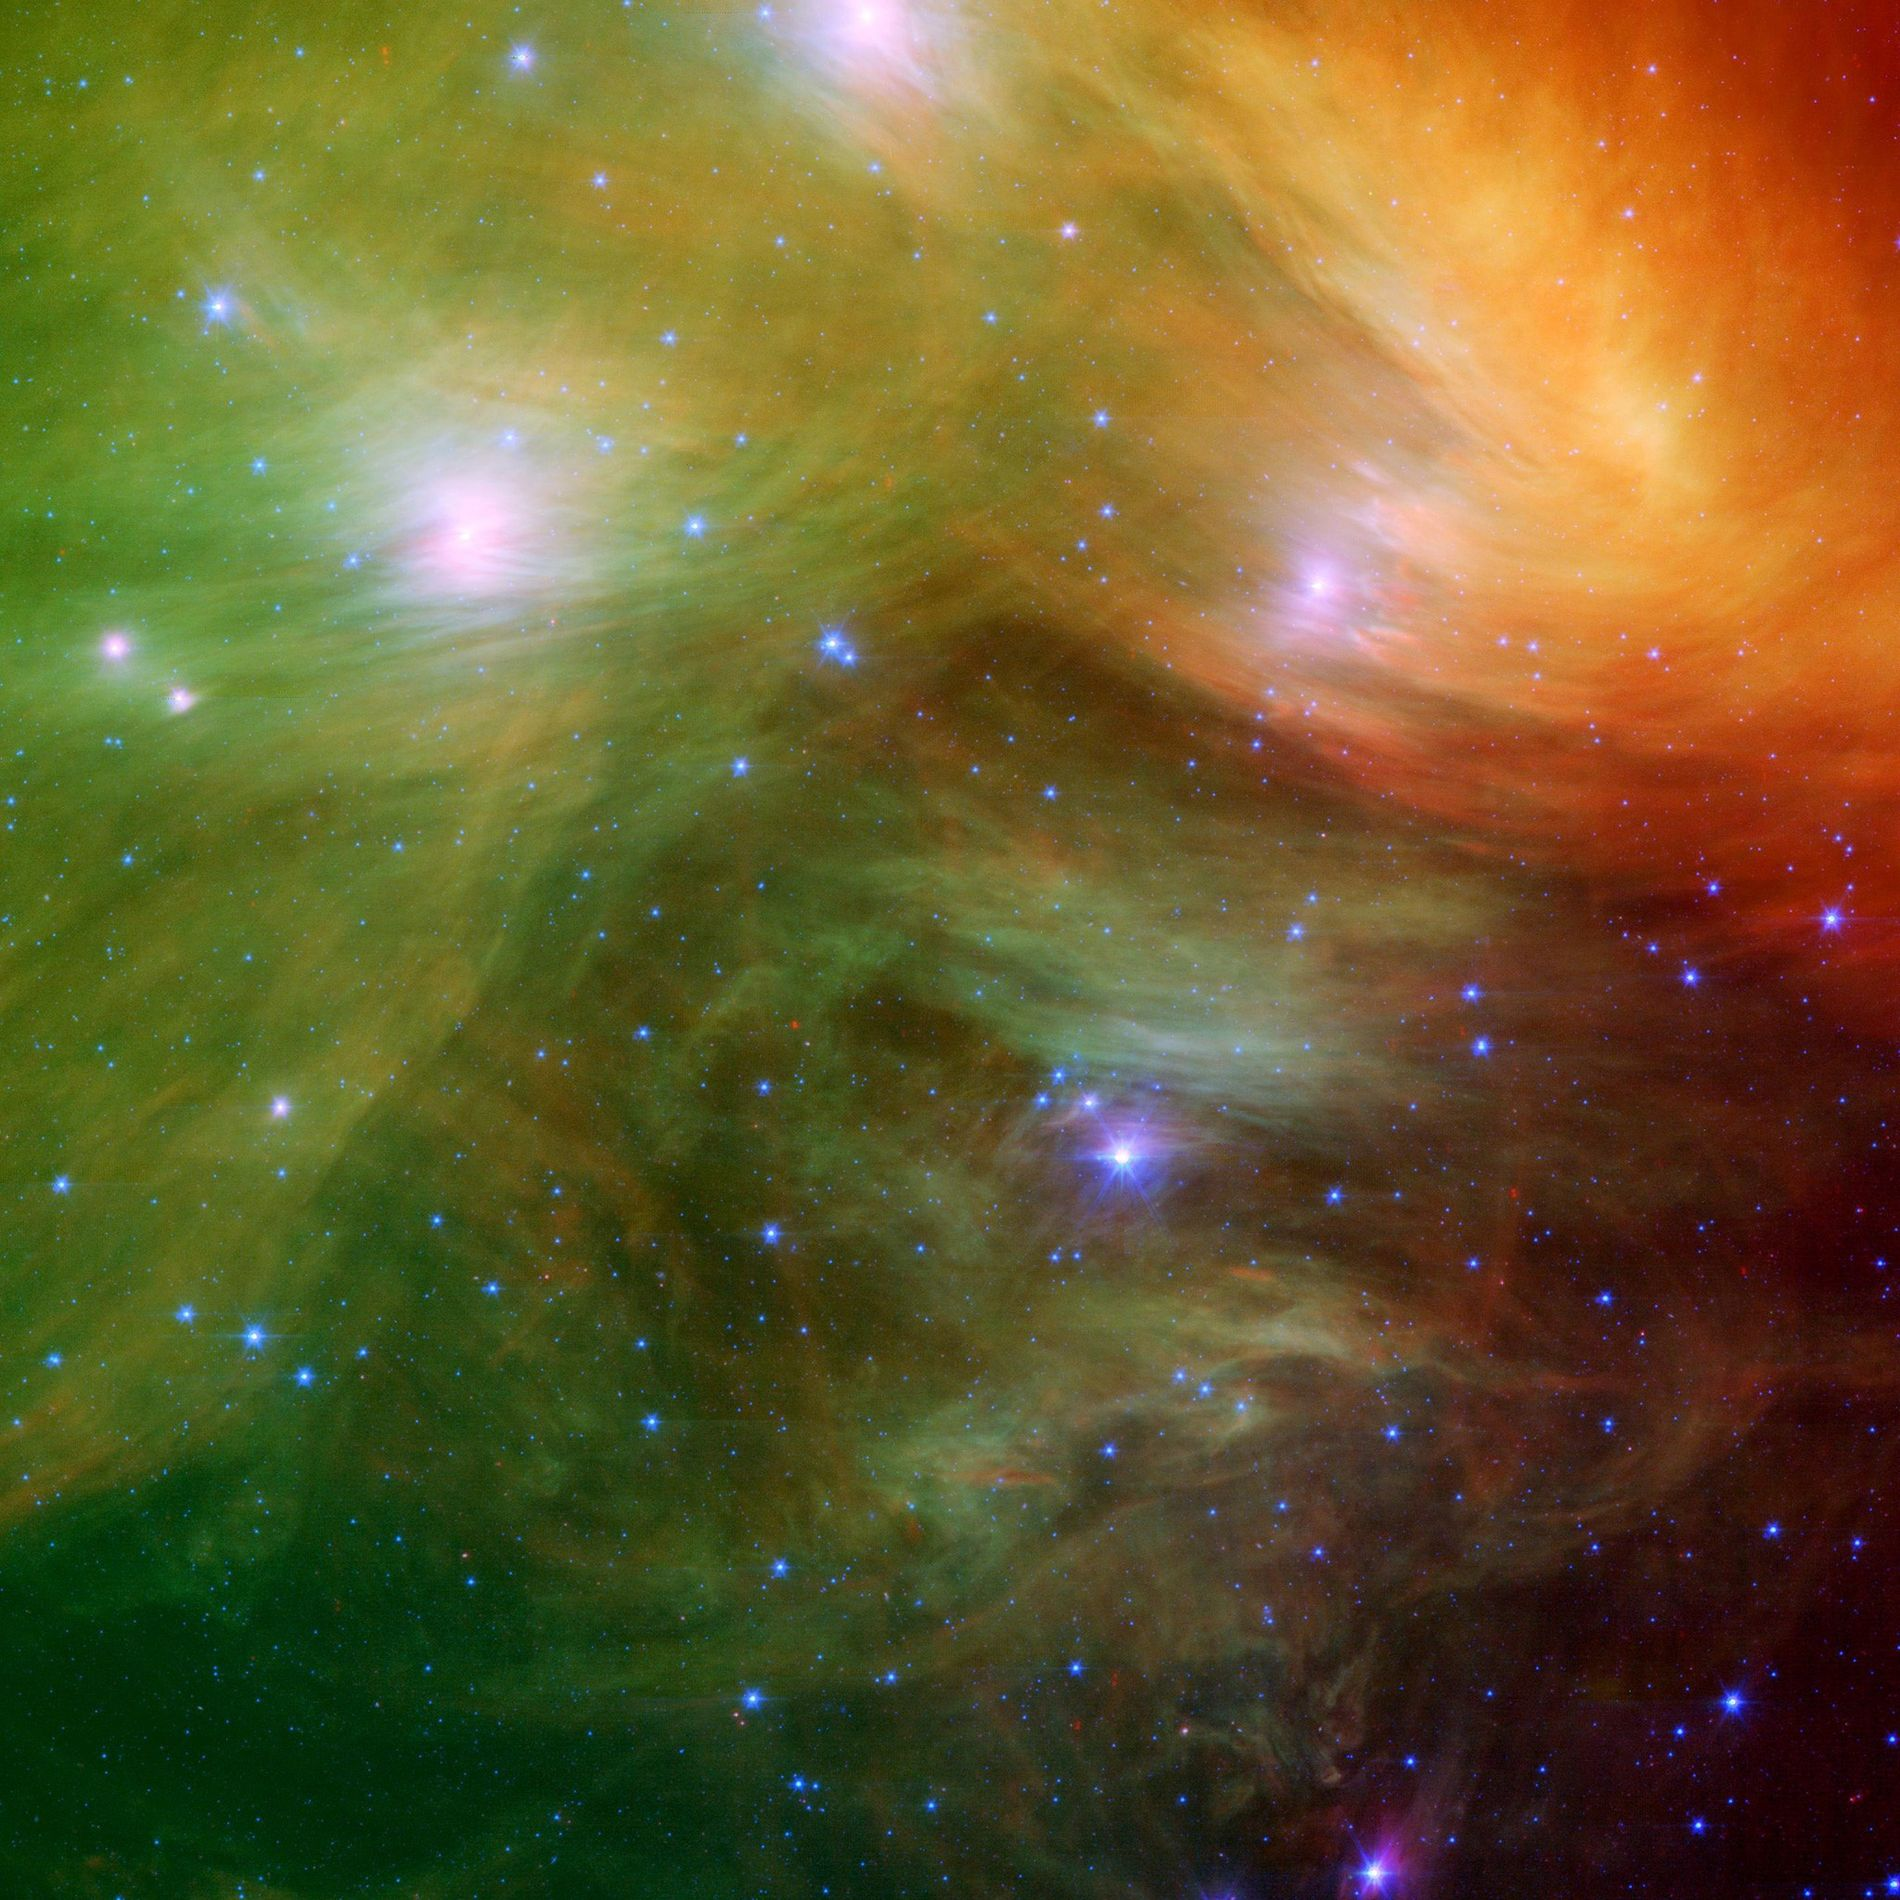 The Seven Sisters, also known as the Pleiades star cluster, shines through colorful clouds of dust ...